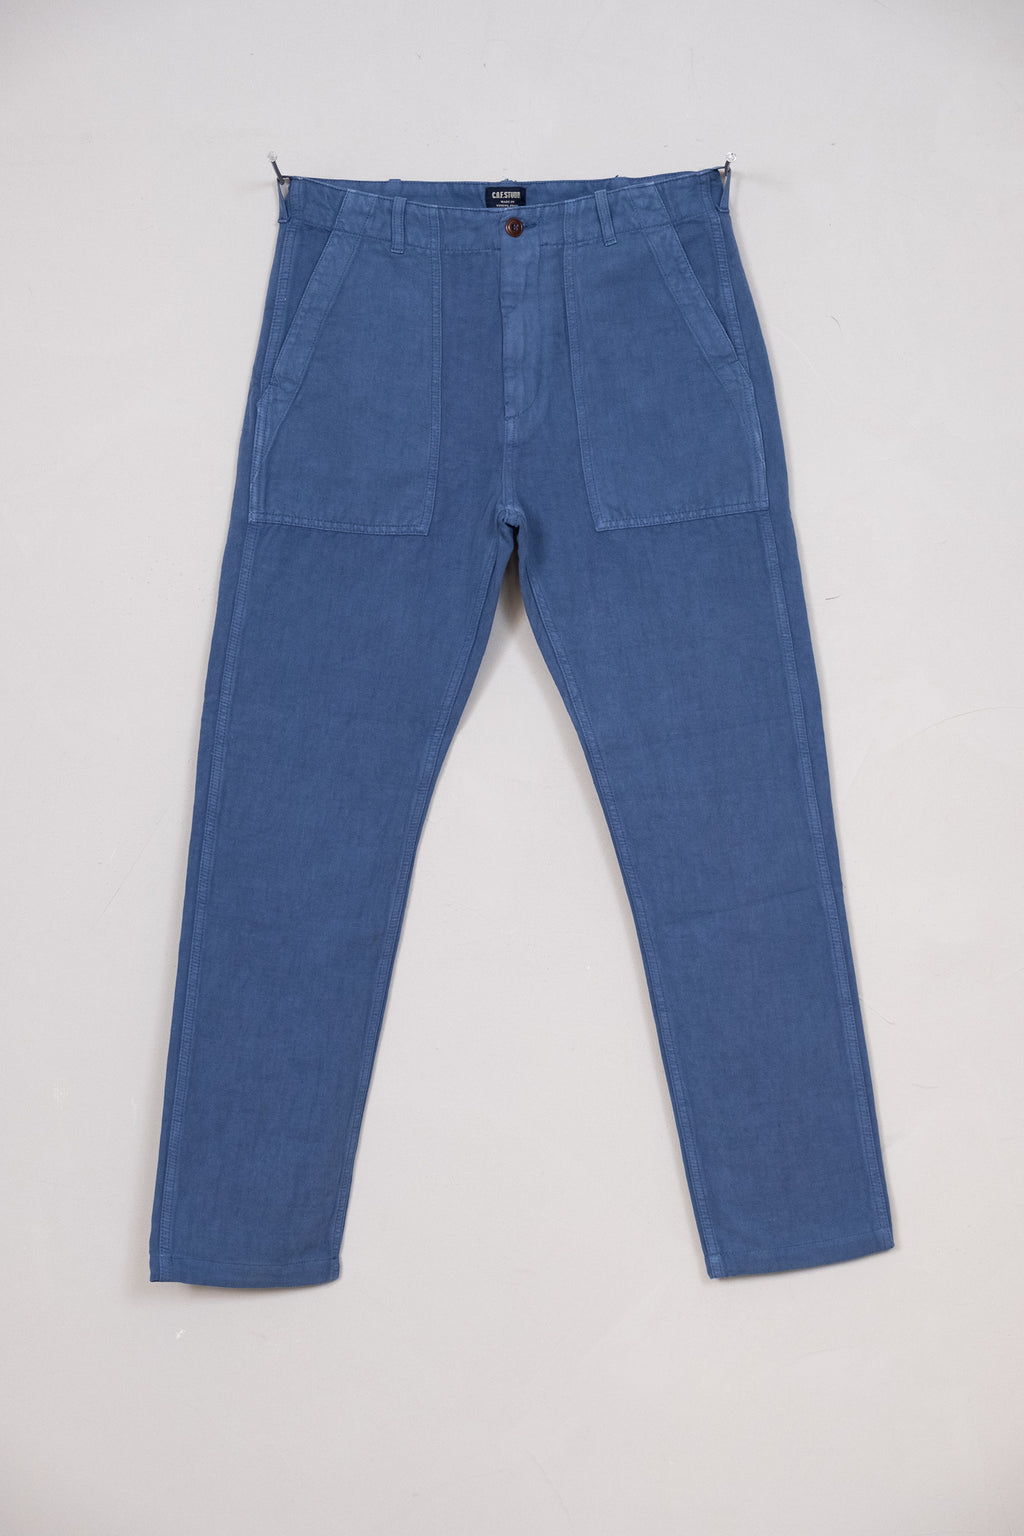 Fatigue Pant Cotton Linen Twill - Avio Blue